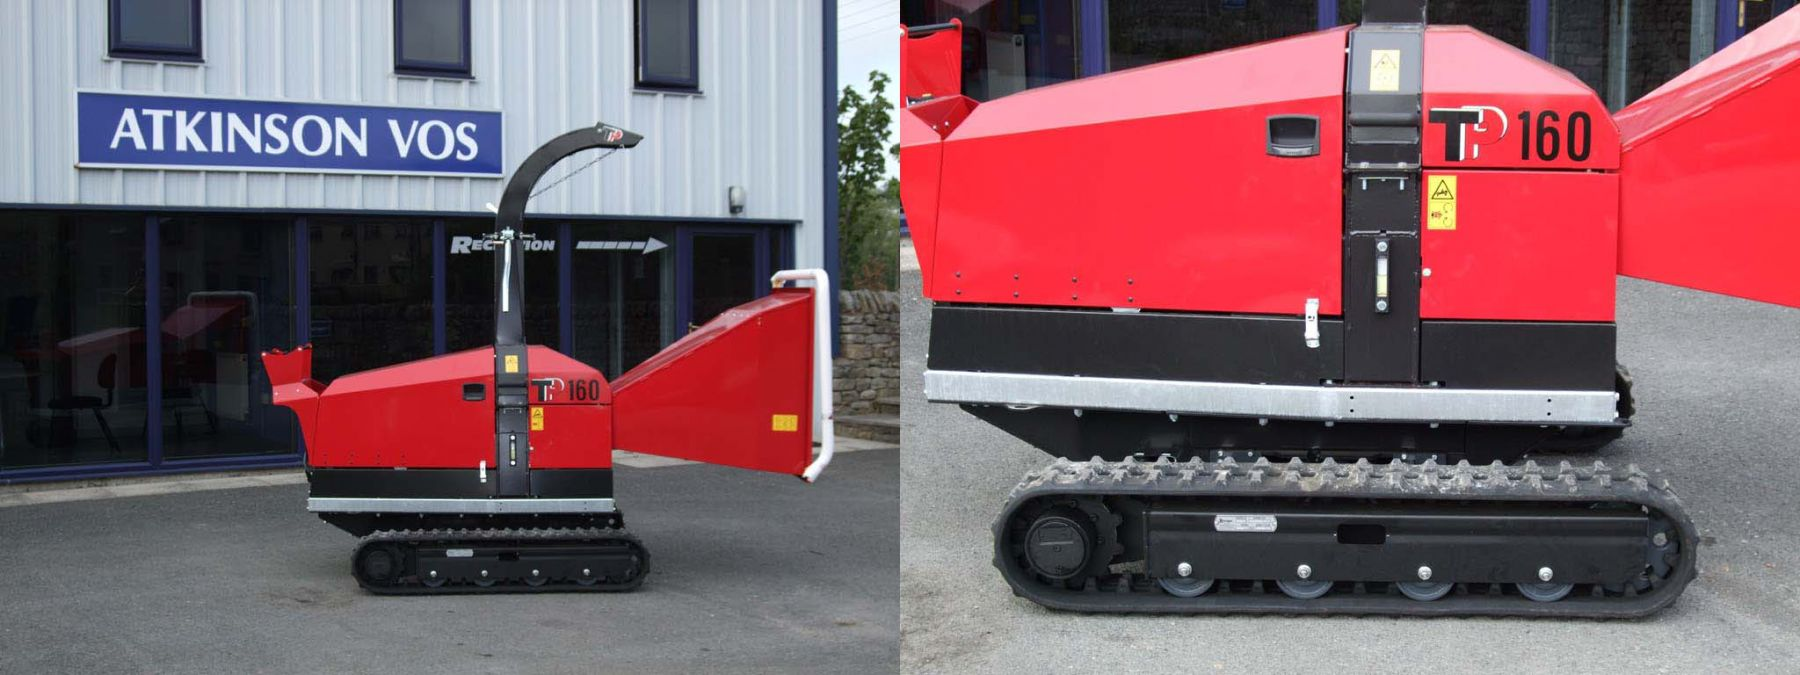 Tp160 Tracked Chipper Has Landed!